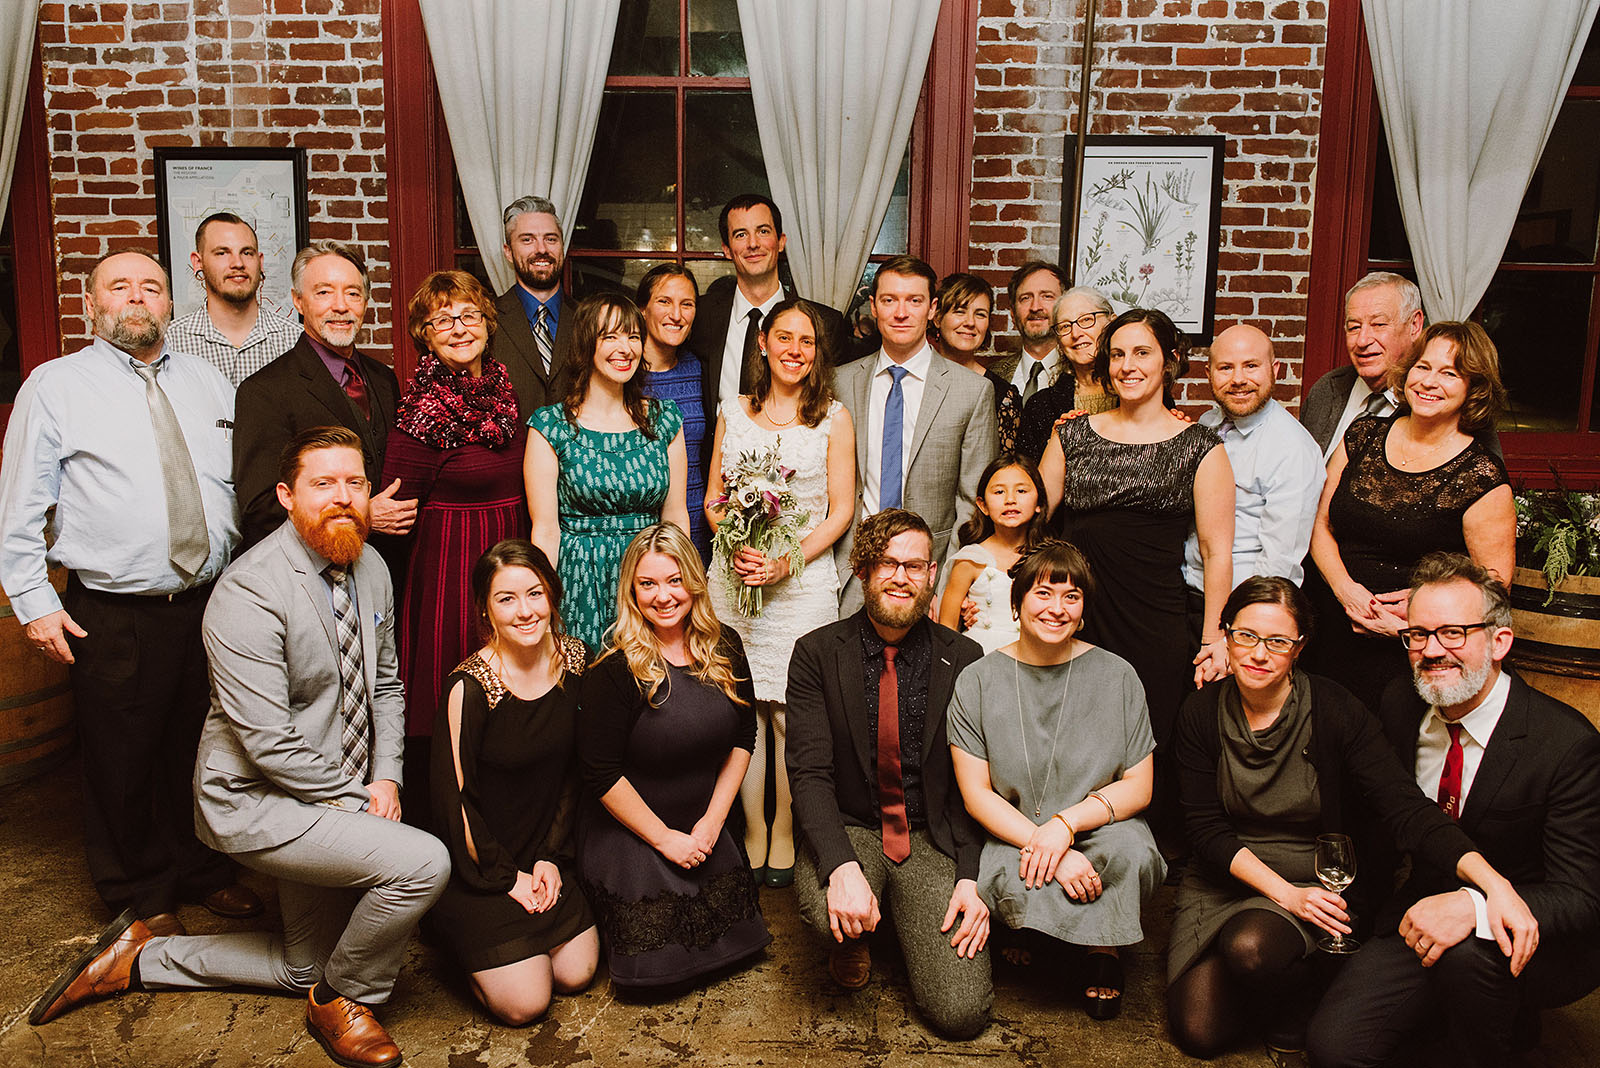 Group shot of all the guests at an Intimate Restaurant Wedding in Portland, OR